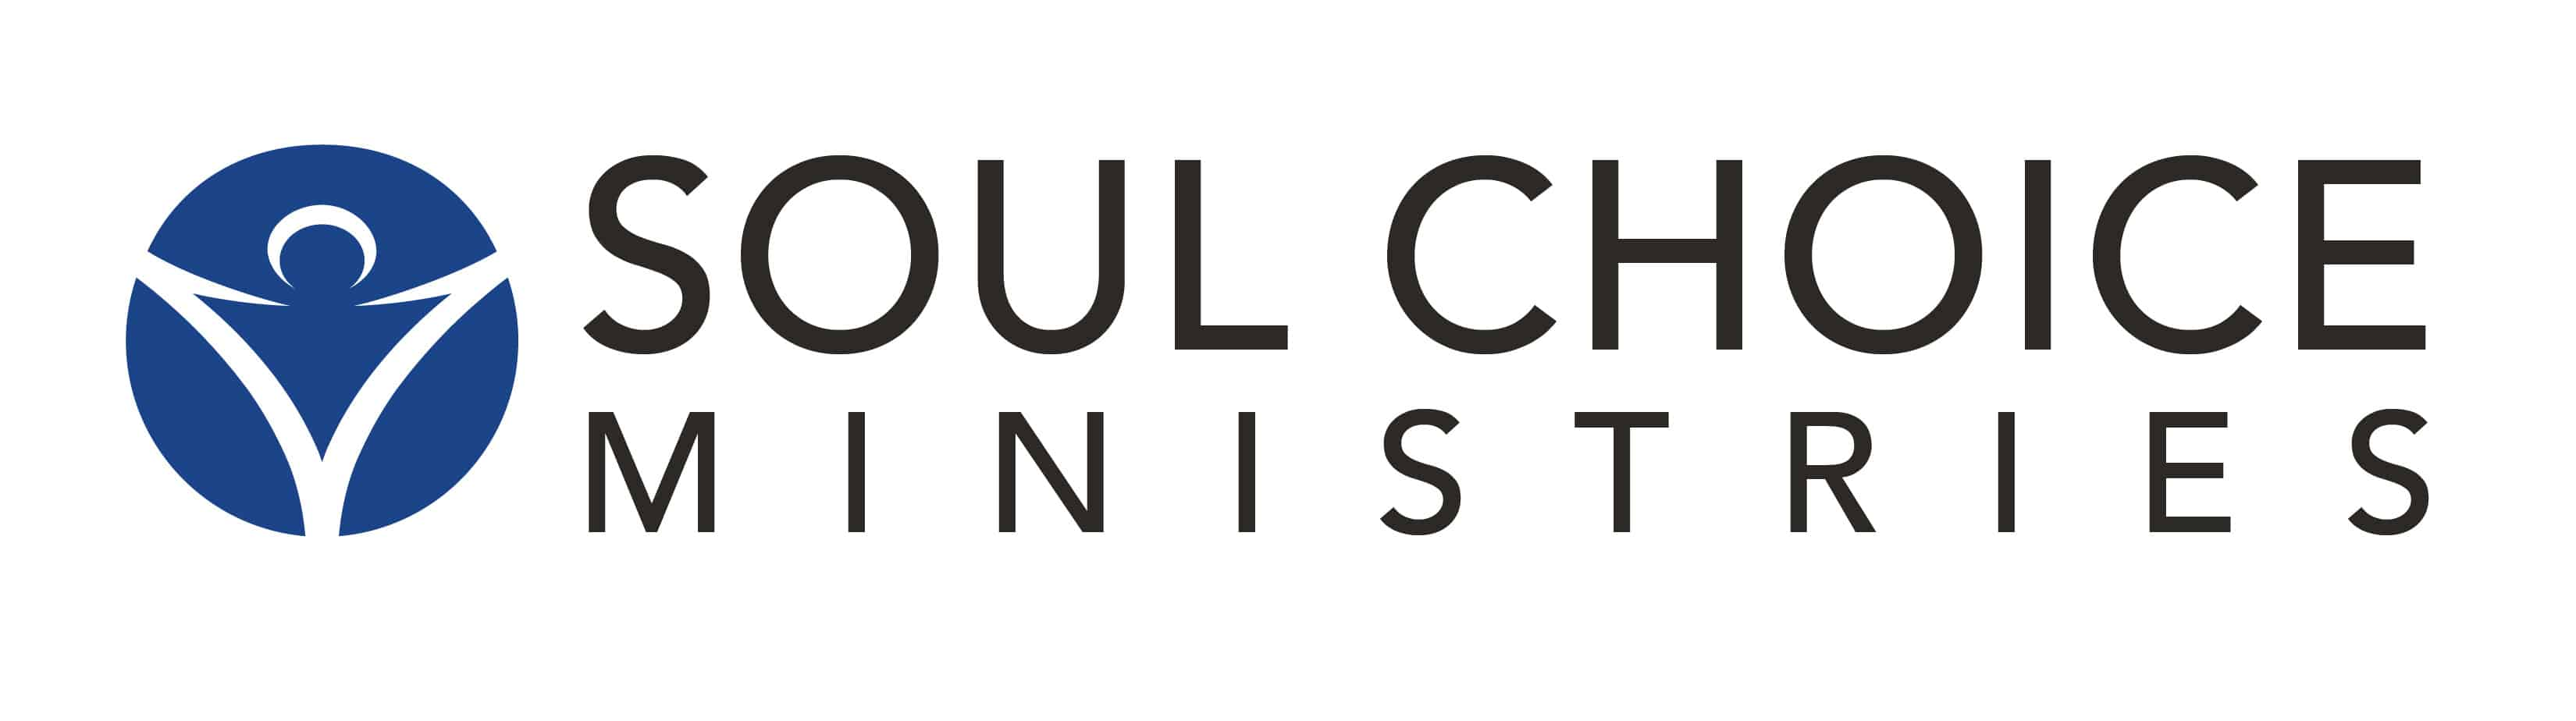 Soul Choice Ministries